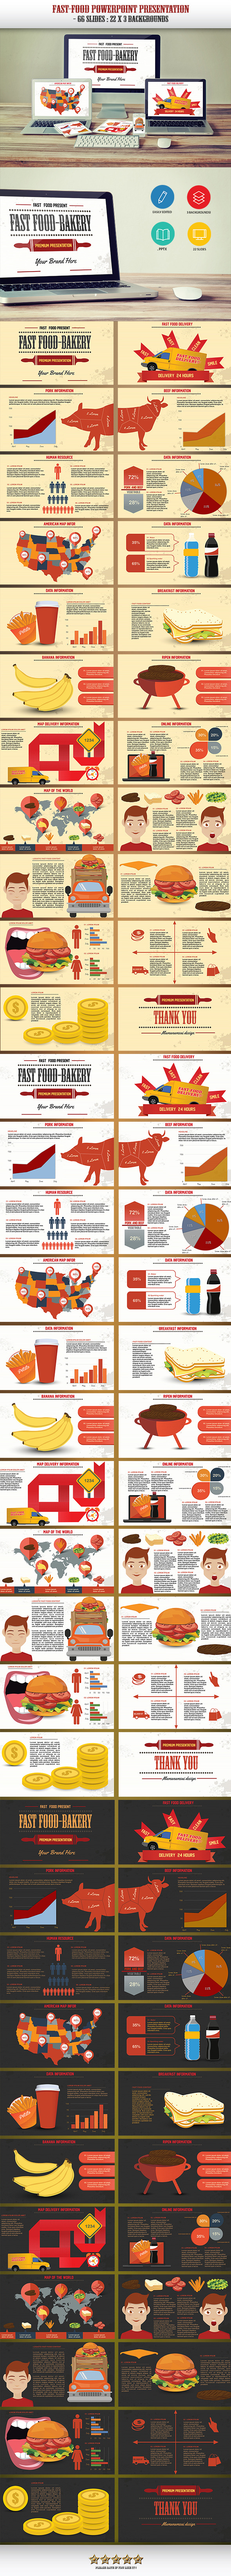 GraphicRiver Fast Food Powerpoint Presentation 10906507